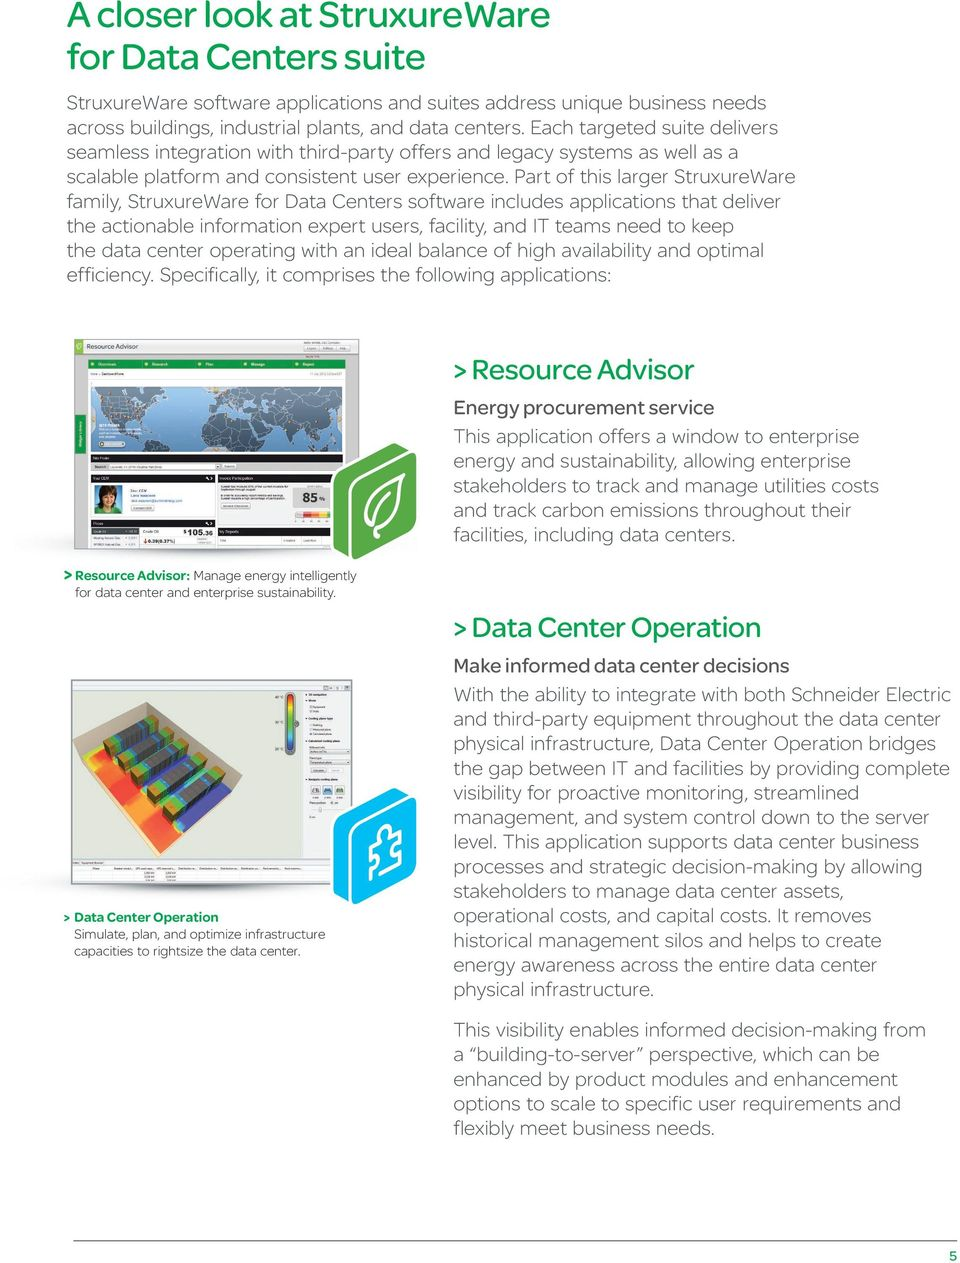 Part of this larger StruxureWare family, StruxureWare for Data Centers software includes applications that deliver the actionable information expert users, facility, and IT teams need to keep the